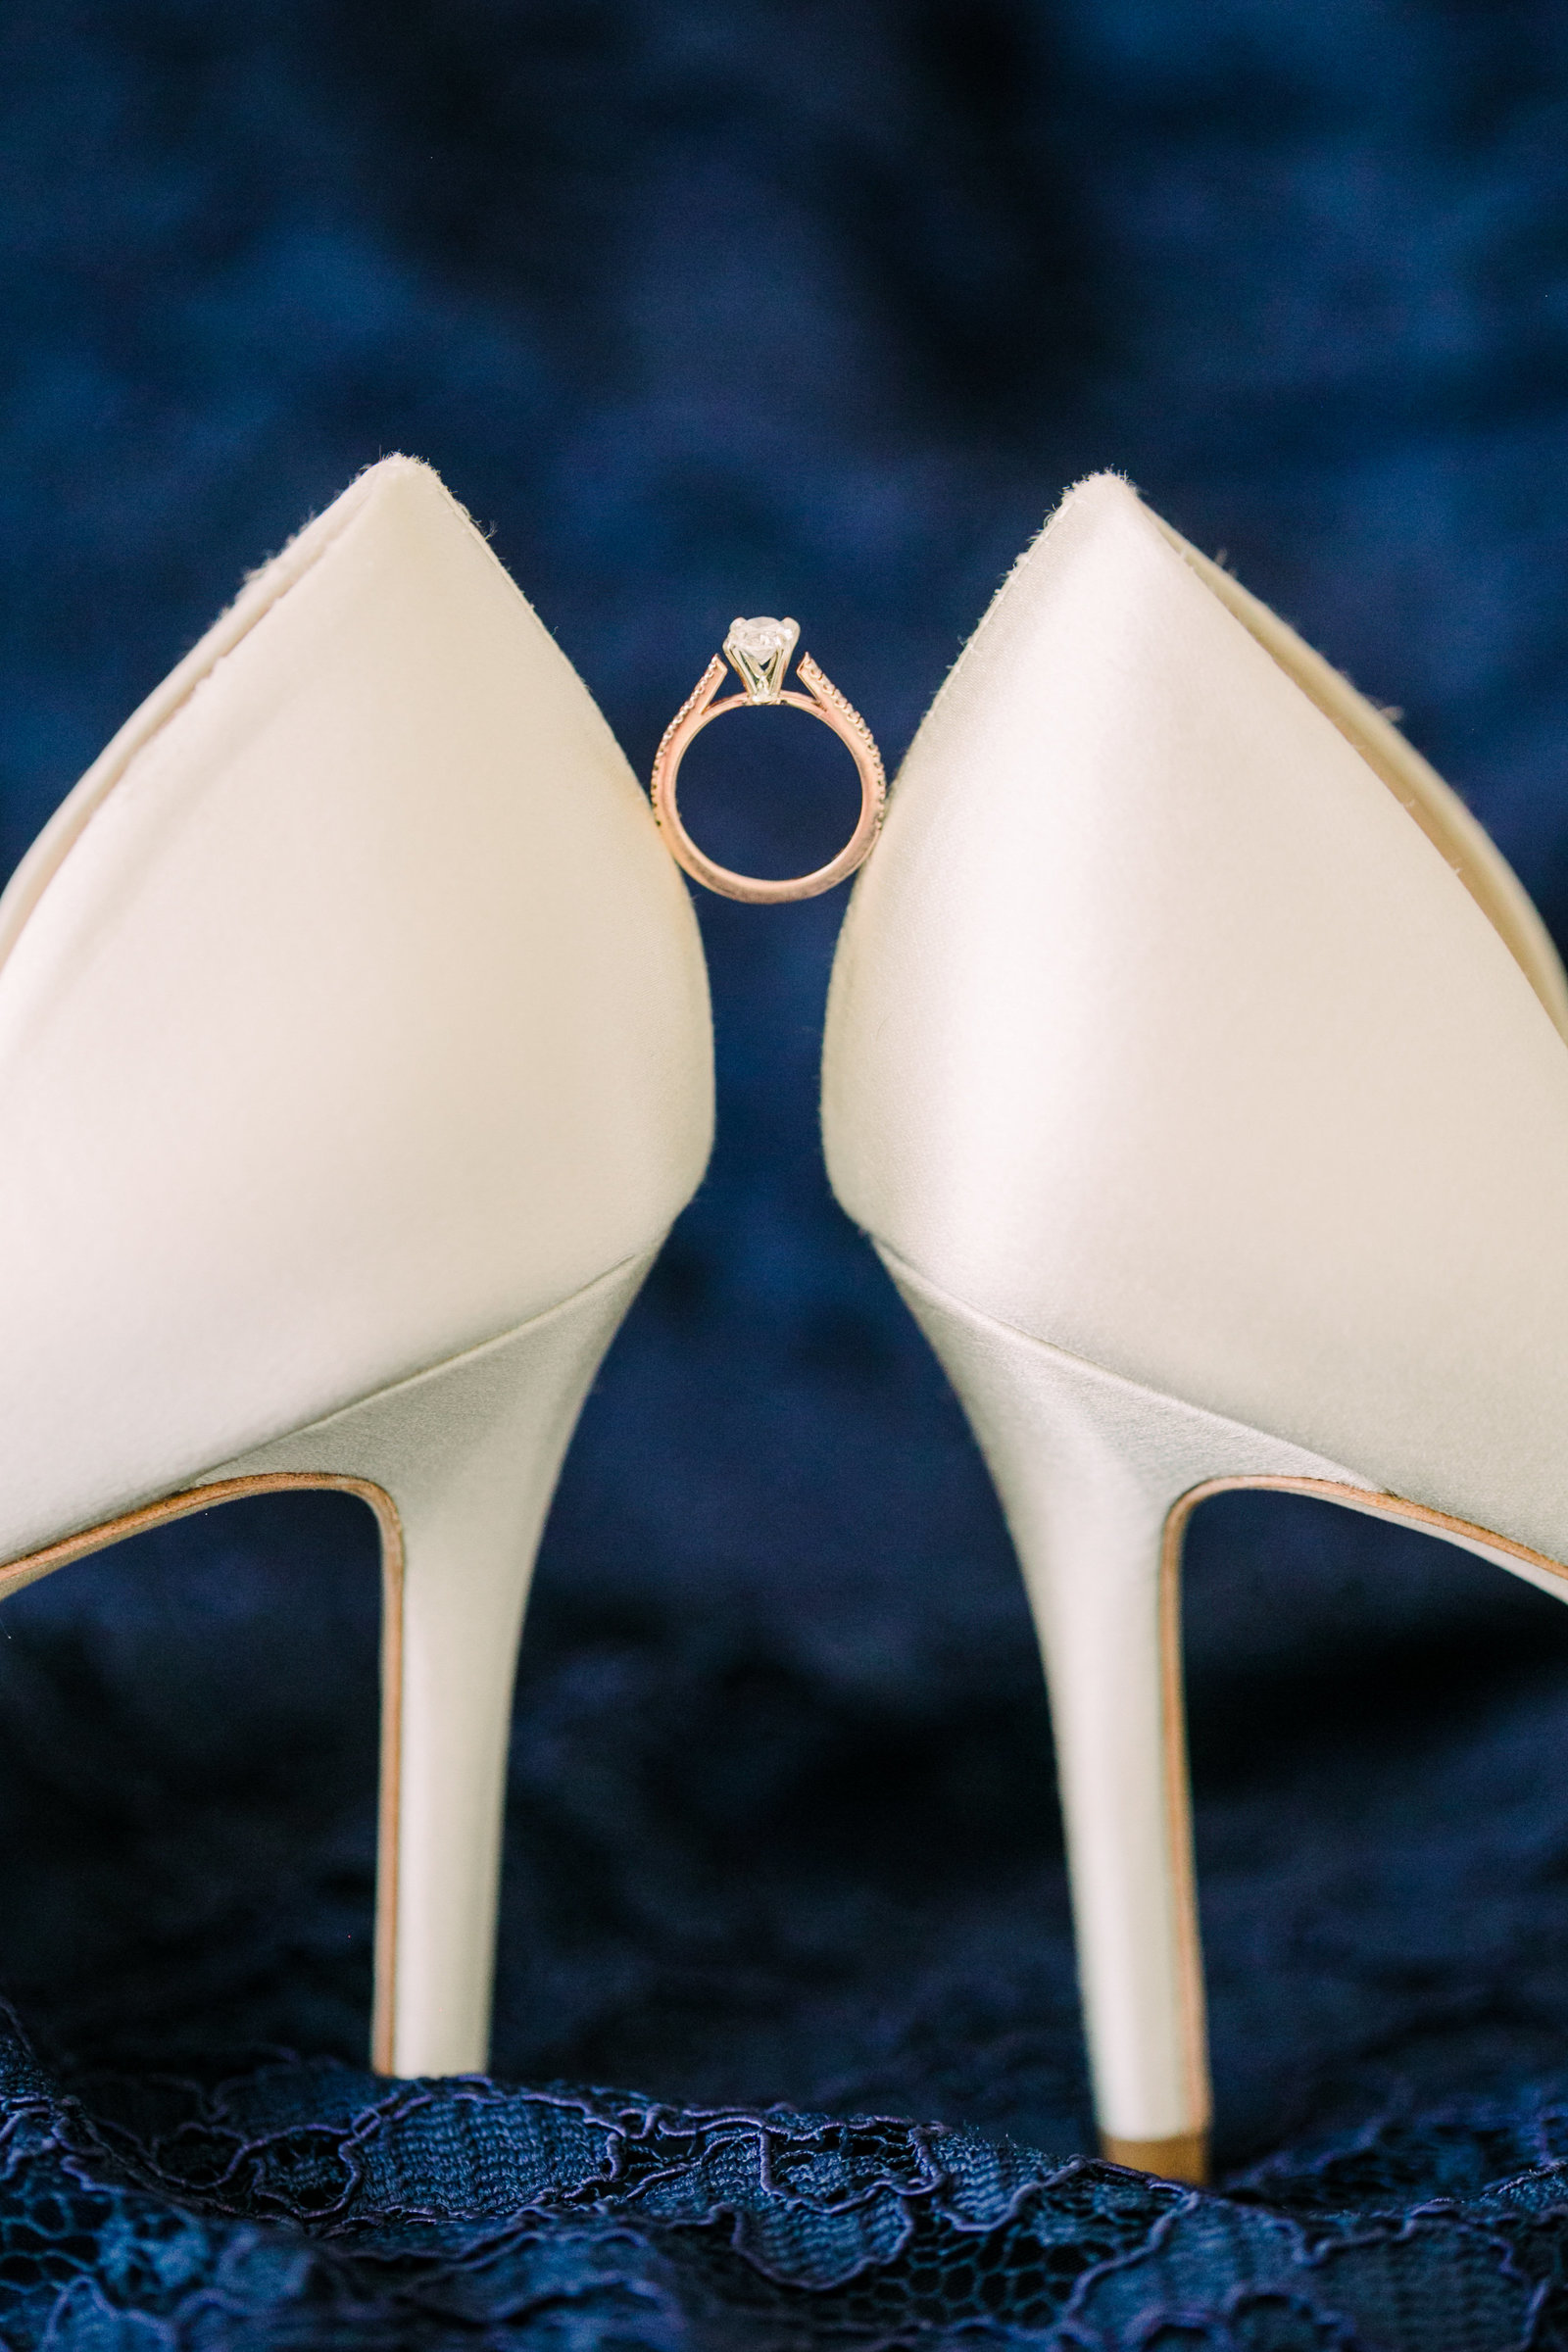 The brides engagement ring is balanced between the heels of her white wedding shoes.